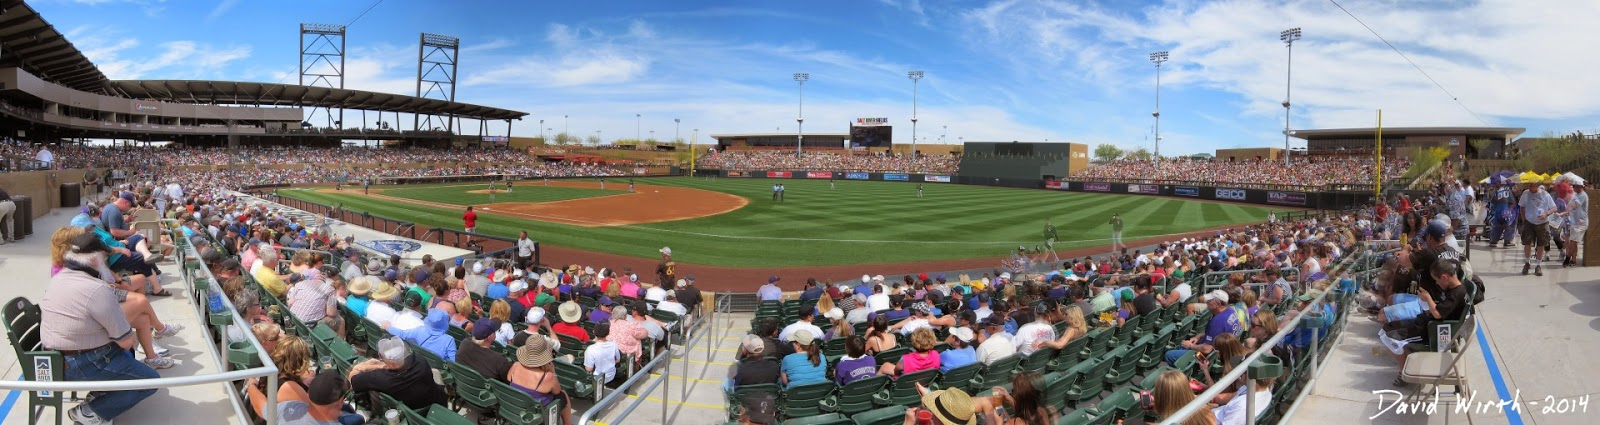 salt river field, scottsdale arizona